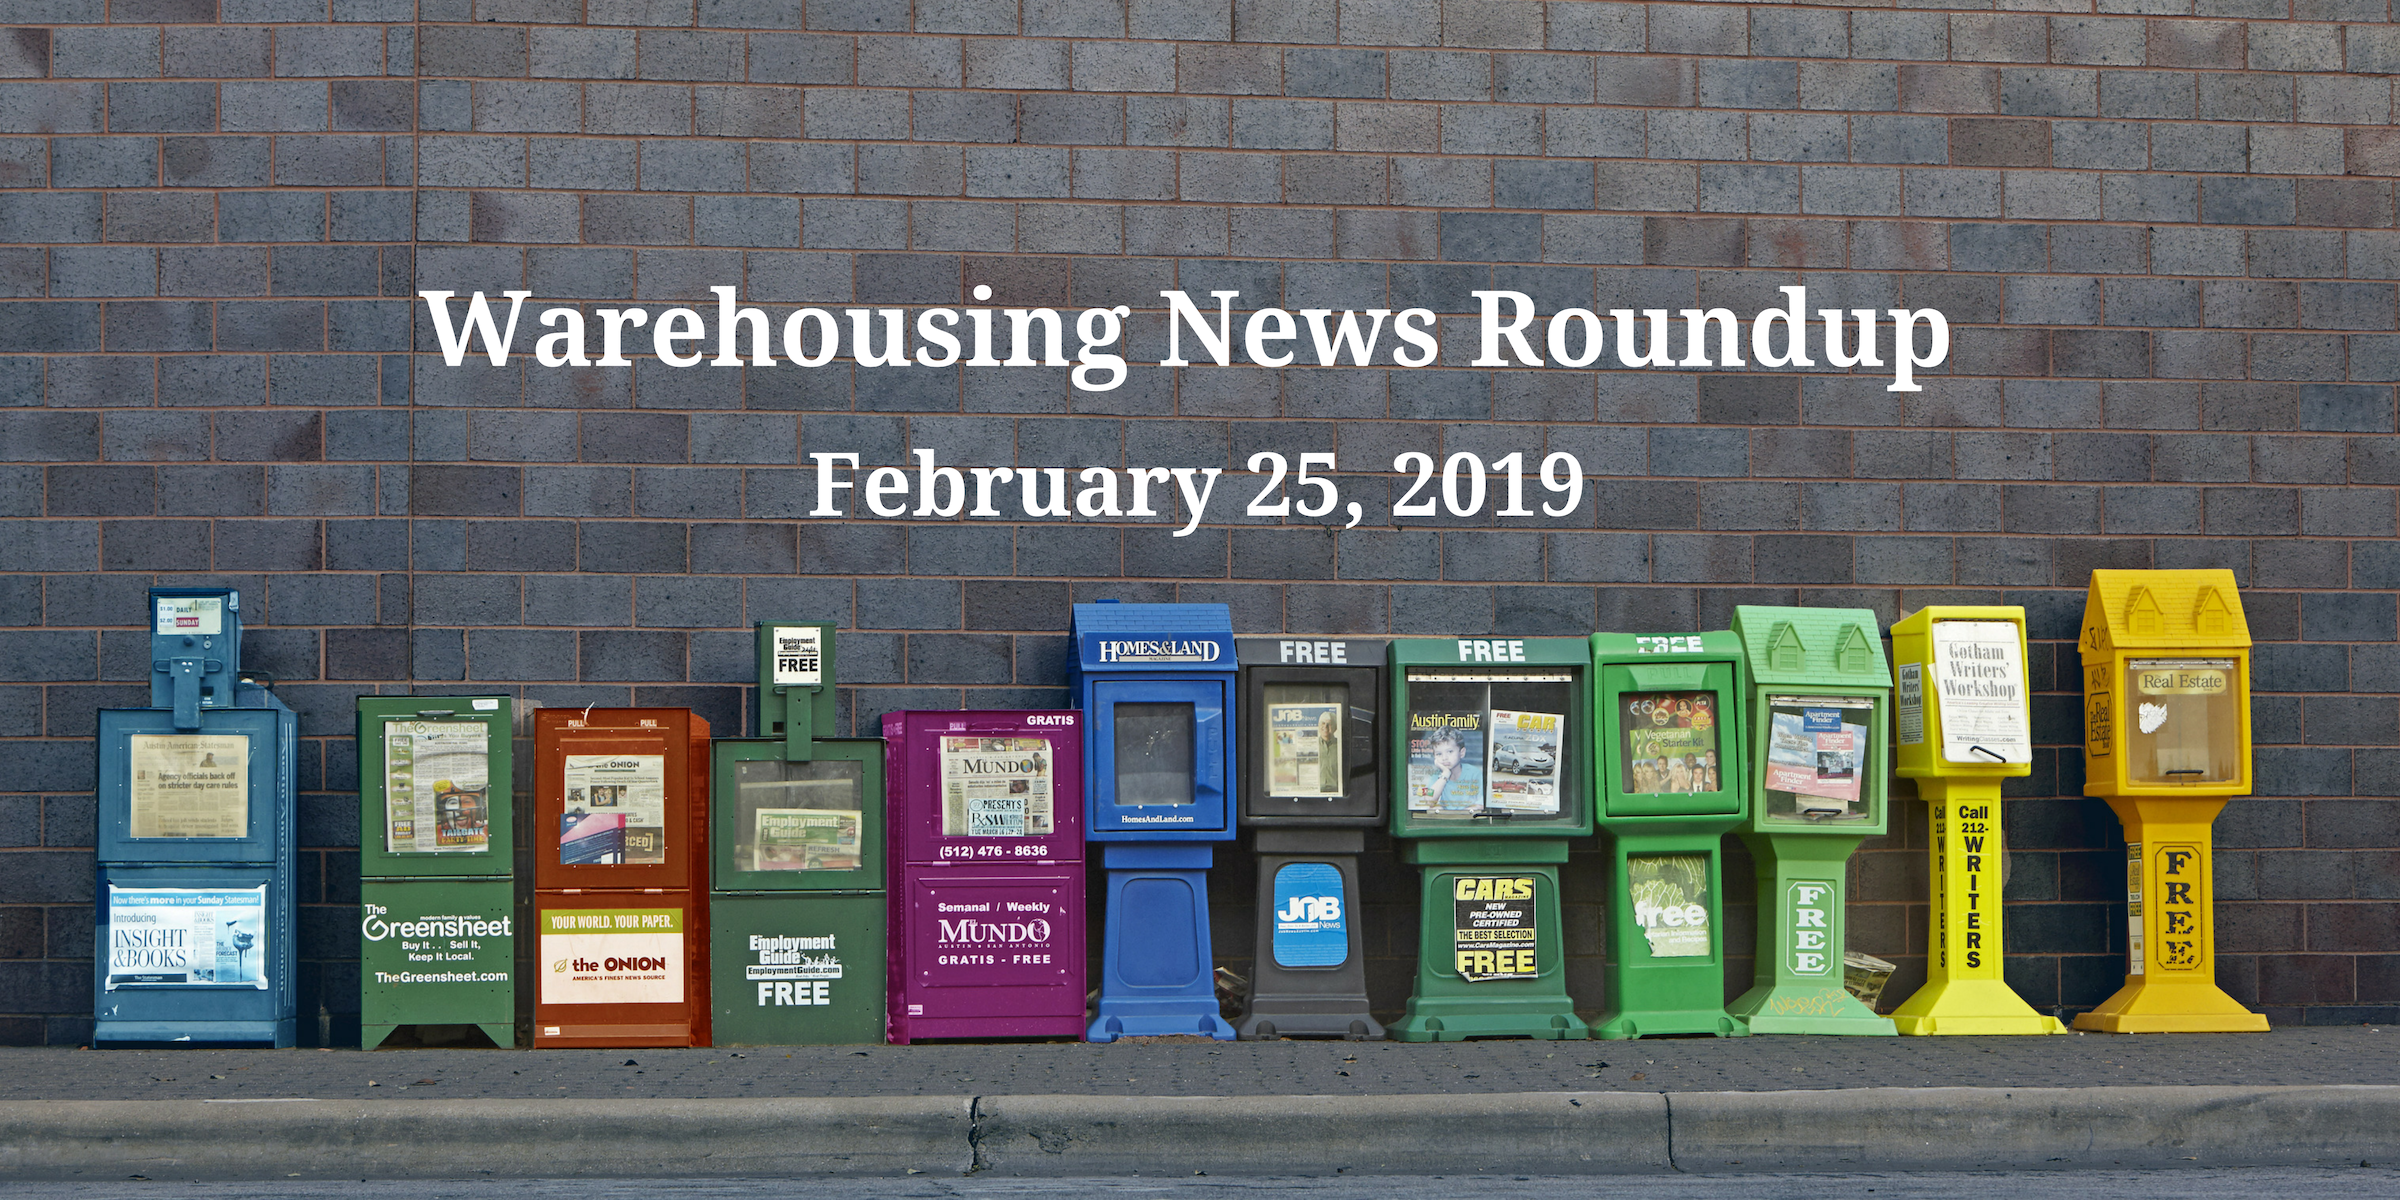 Warehousing News Roundup: February 25, 2019